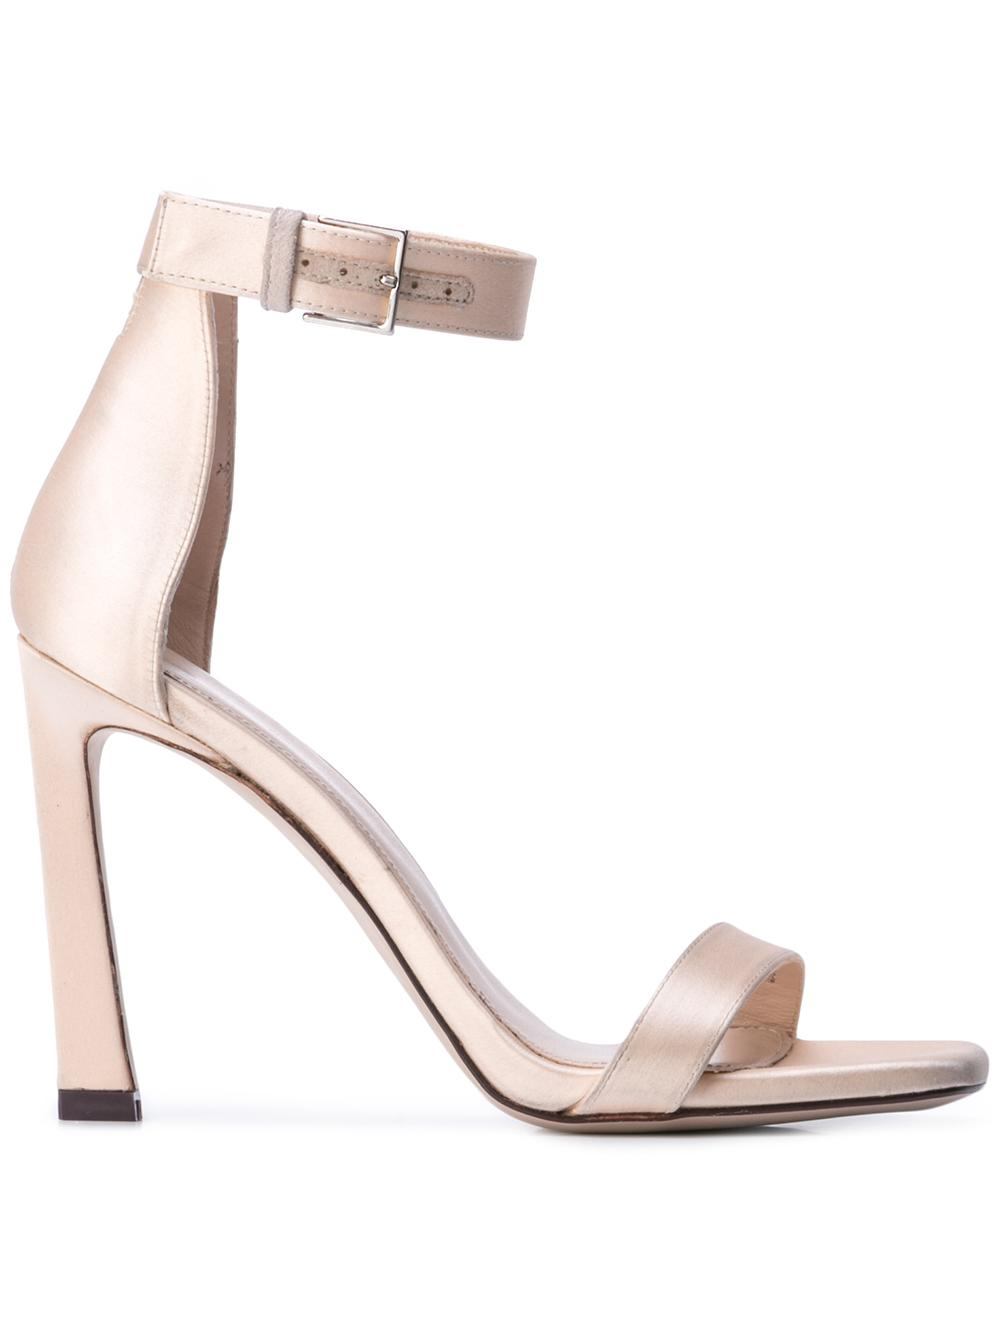 Satin Square Toe High Heel Ankle Strap Sandal